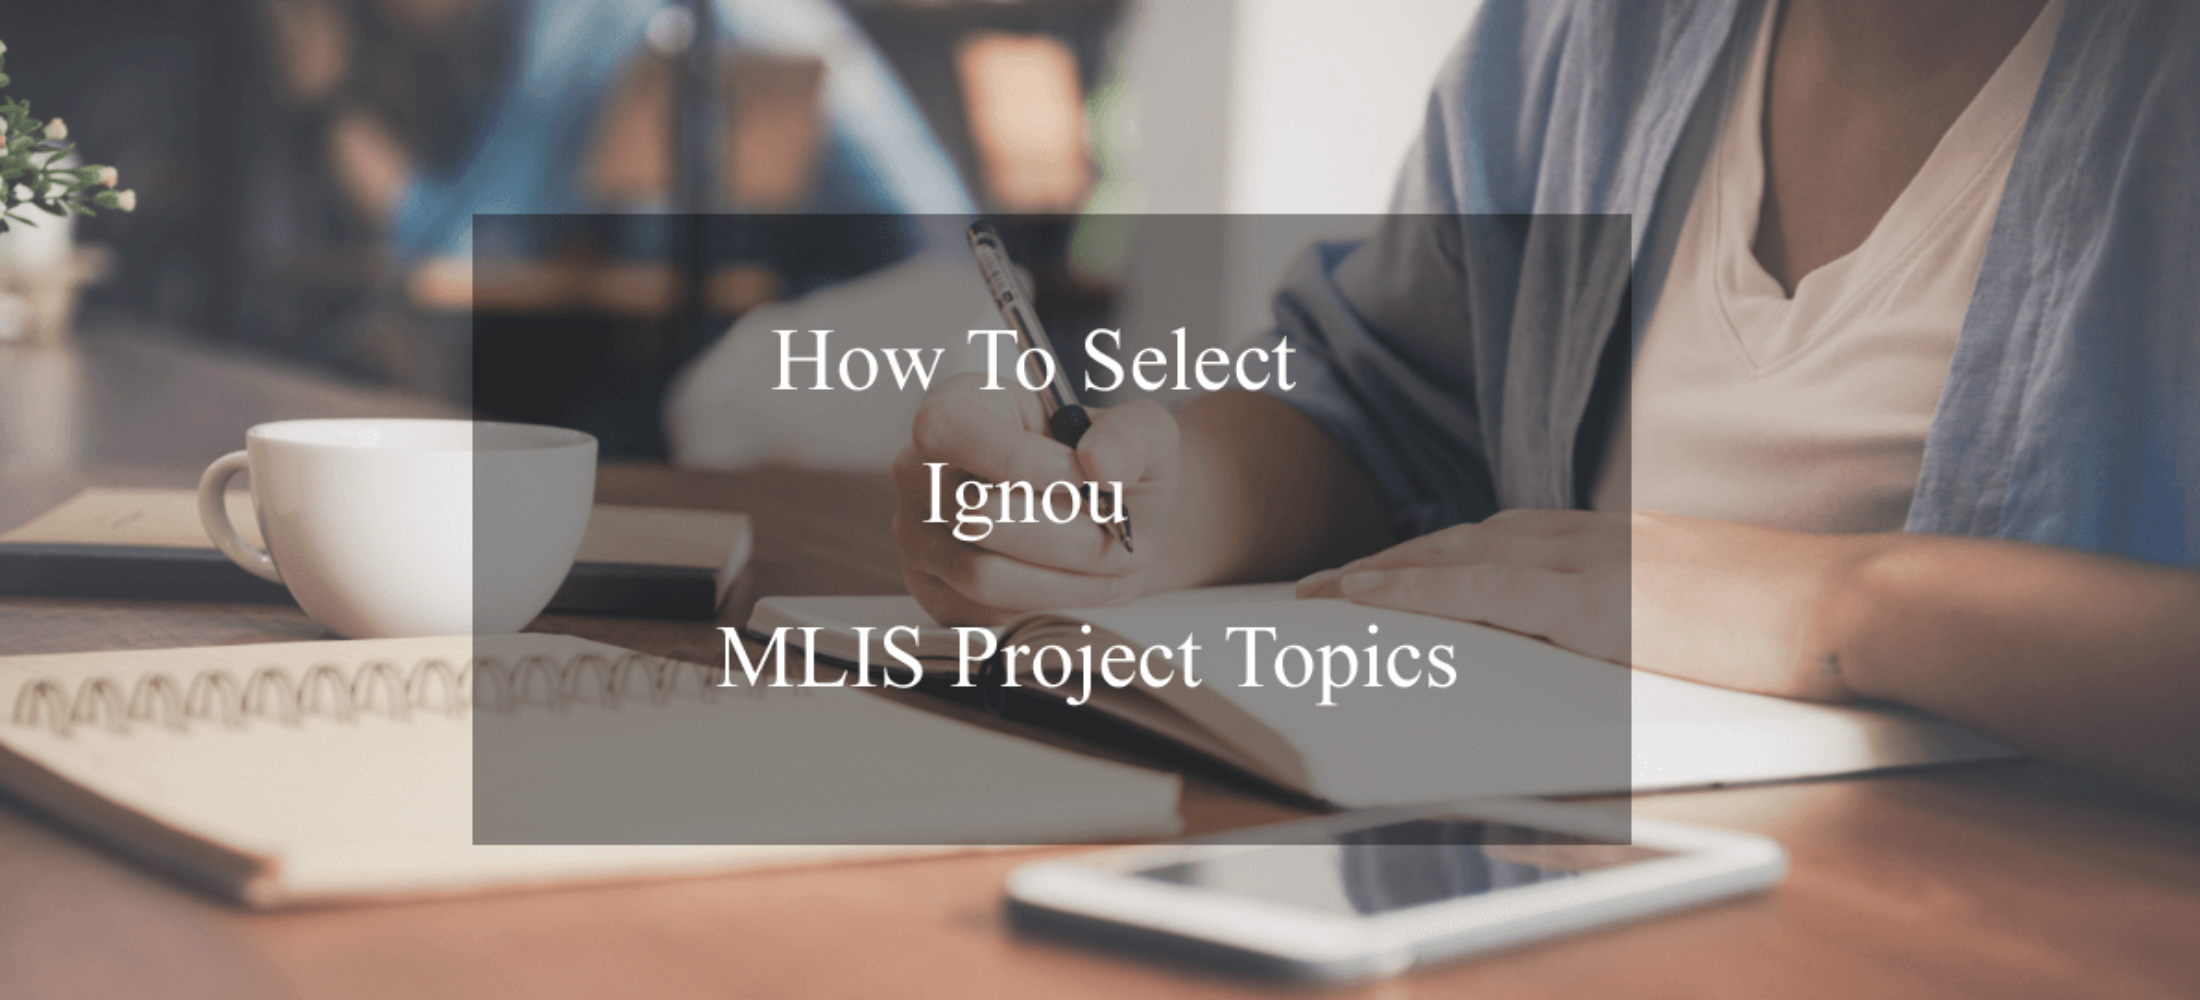 How To Select Ignou MLIS Project Topic